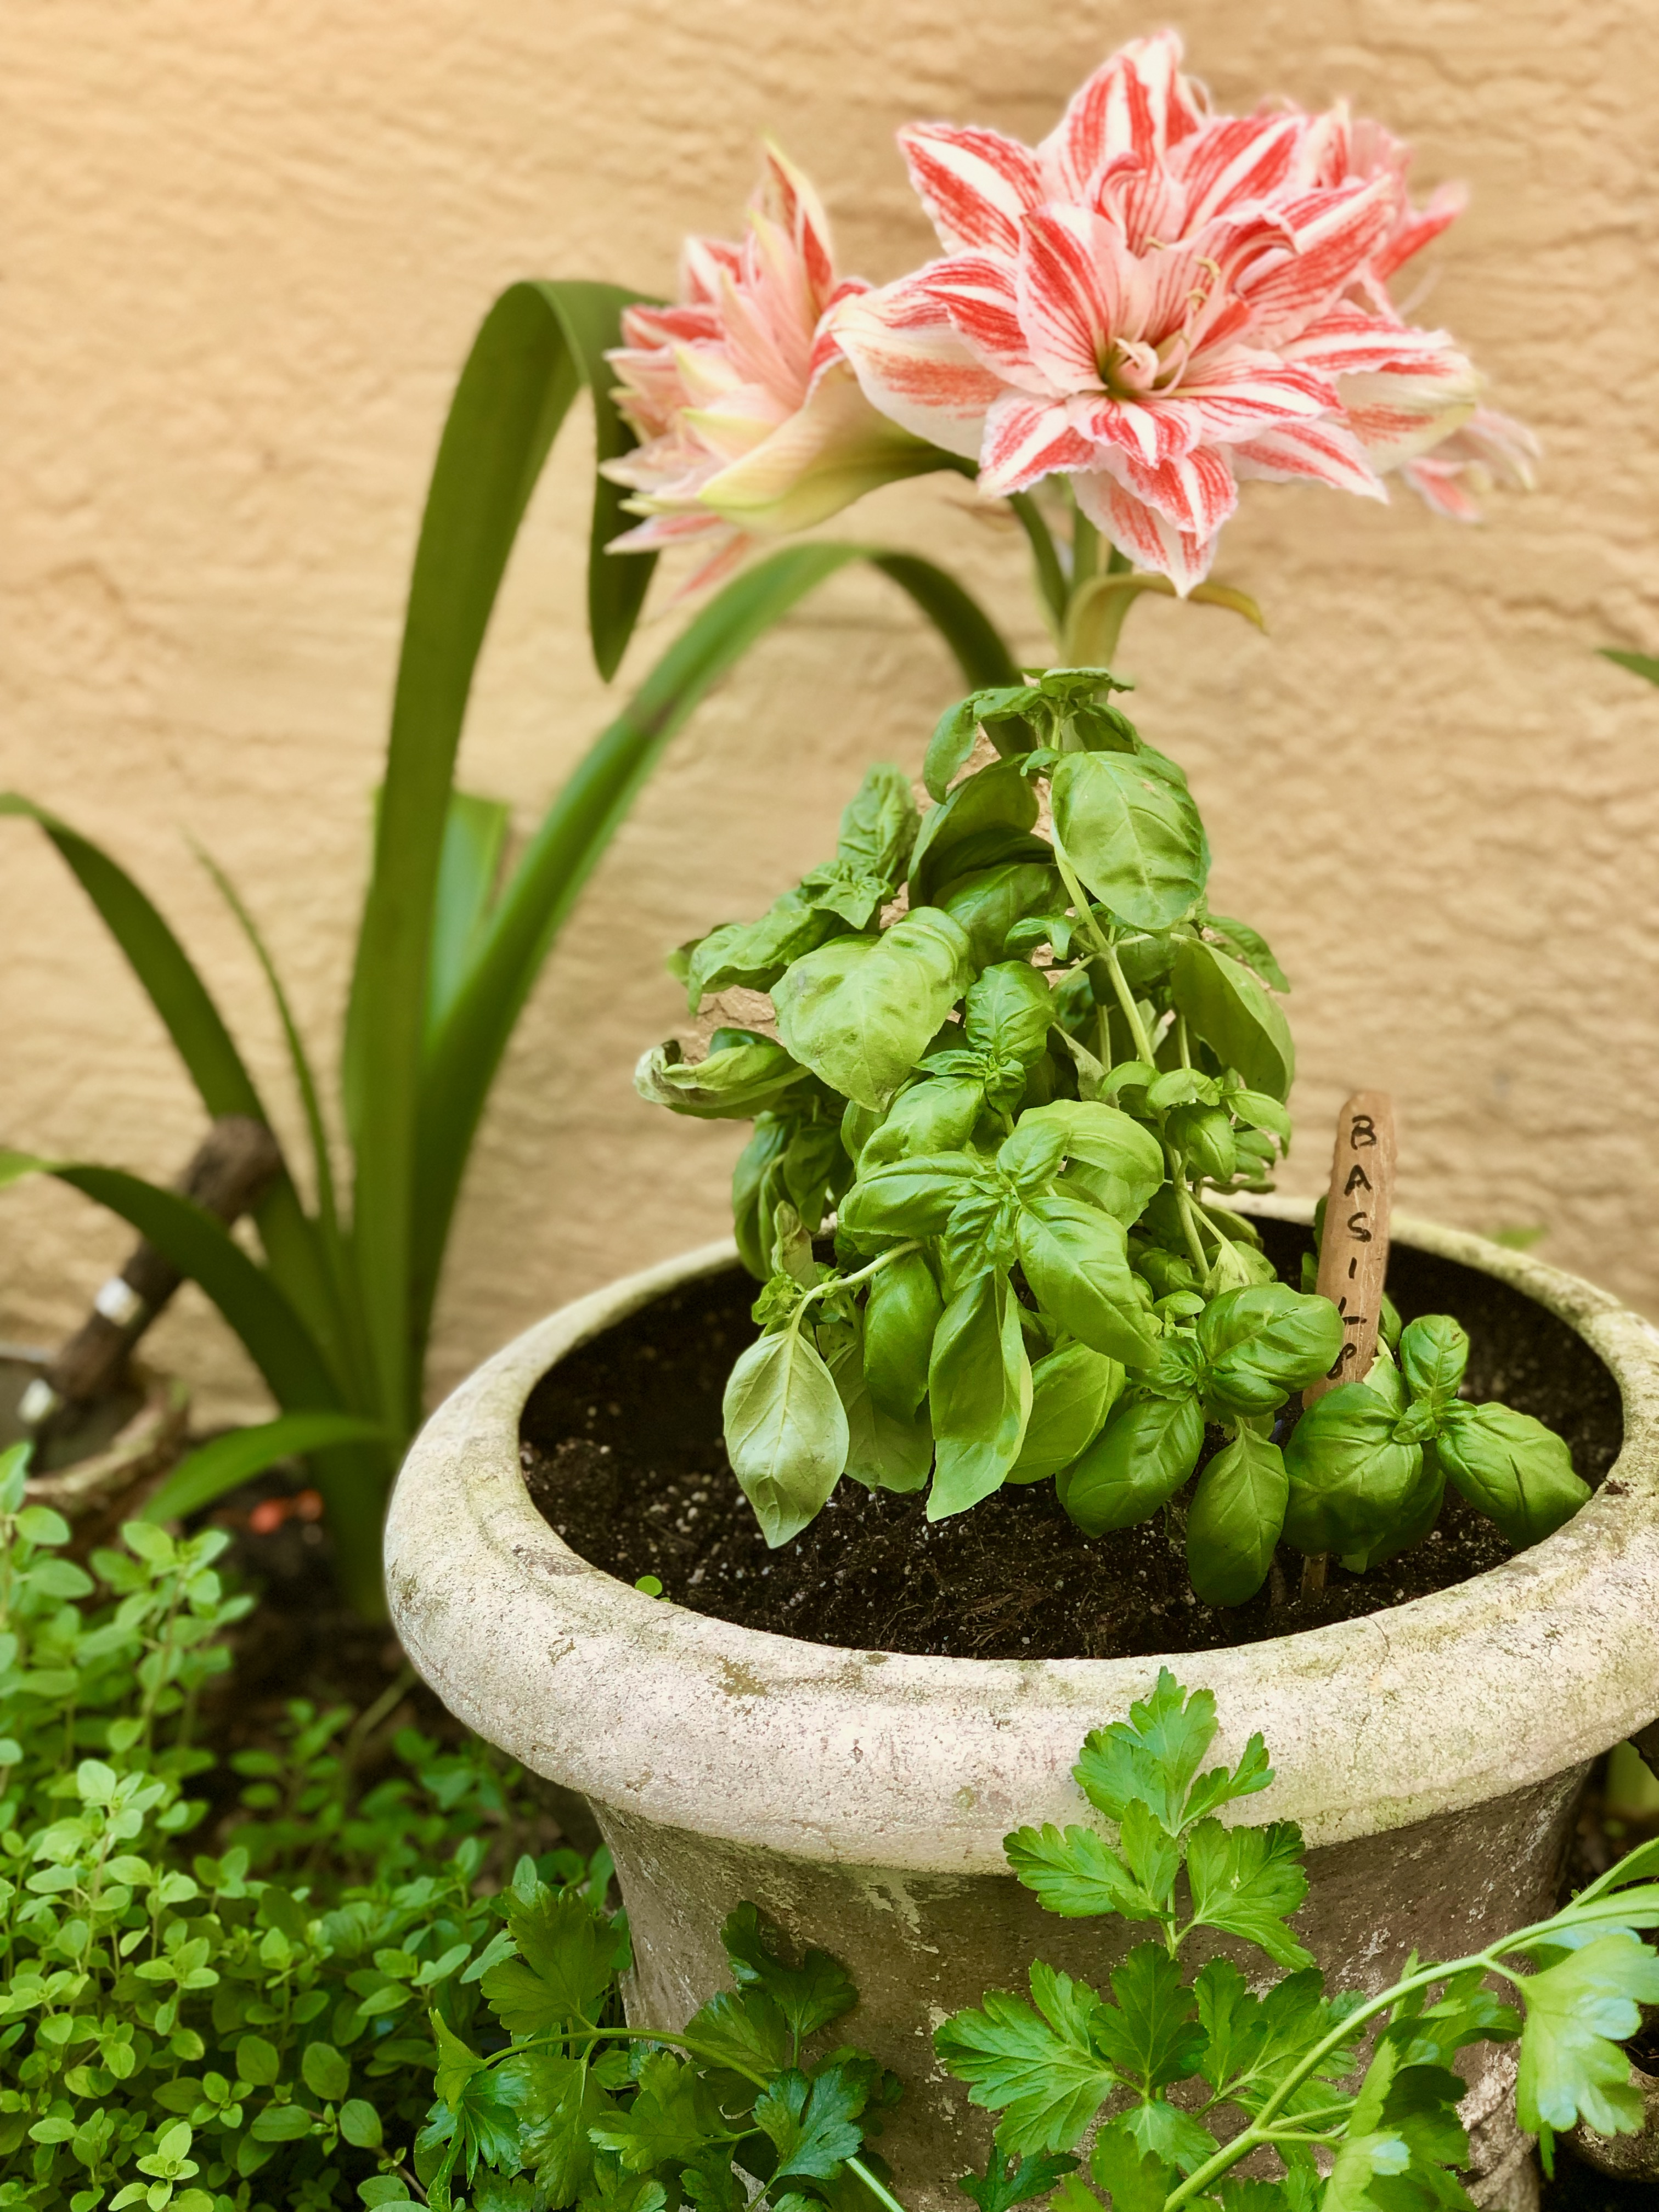 Amaryllis featured in herb garden with oregano, parsley and basil